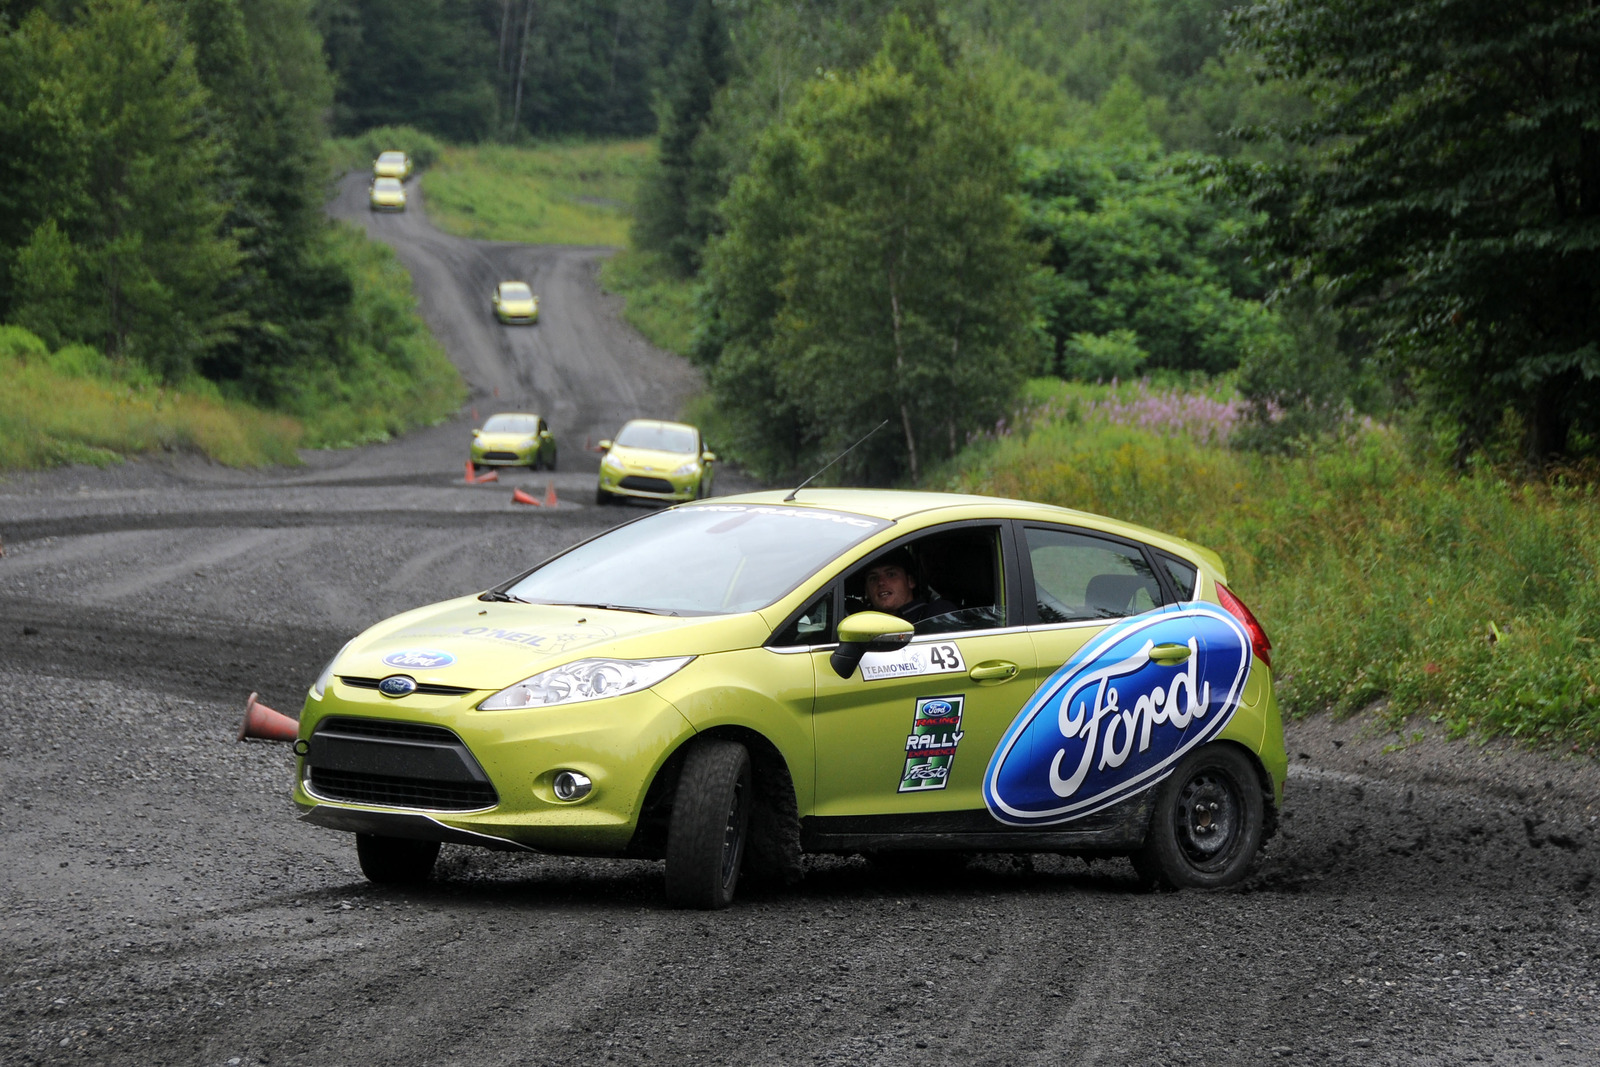 Ford Racing + Team O'Neil = Fiesta Driving School (Page 2)